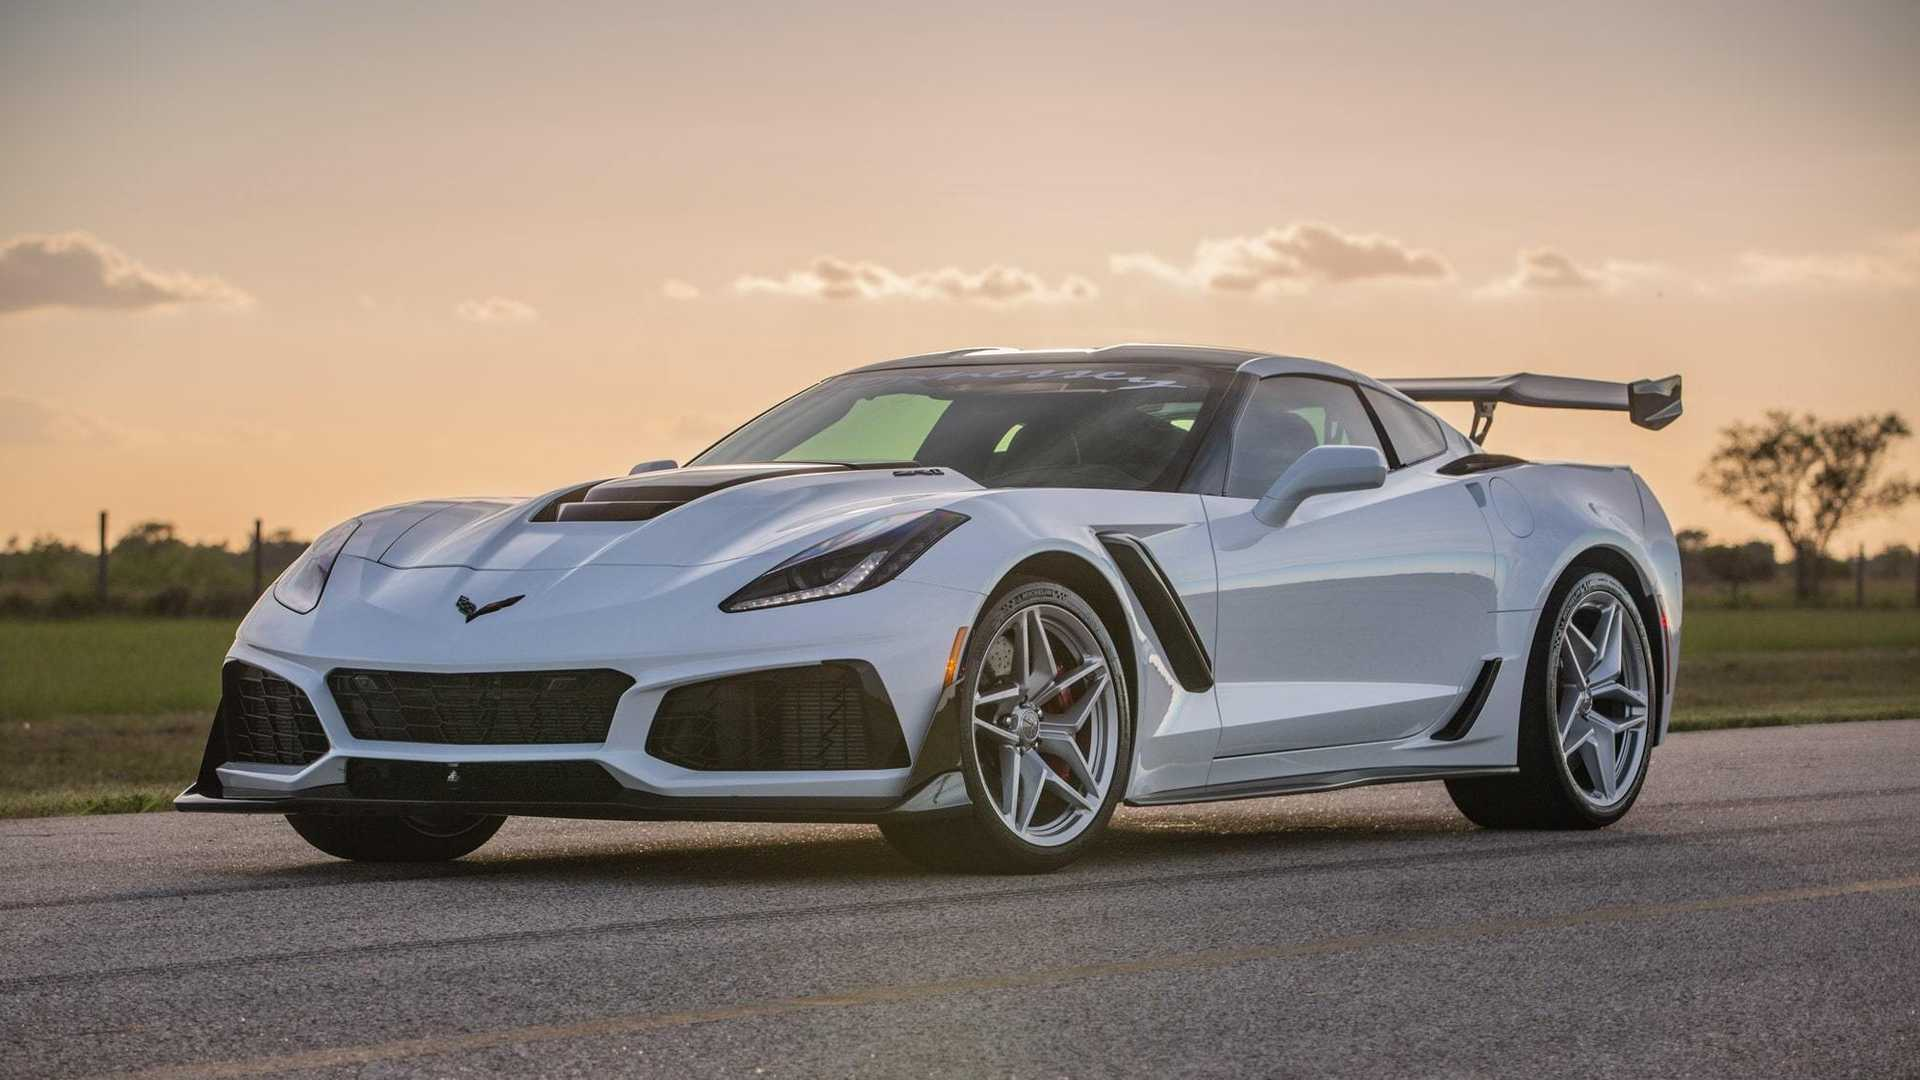 66 The Best 2019 Chevrolet Corvette Zr1 Redesign And Concept